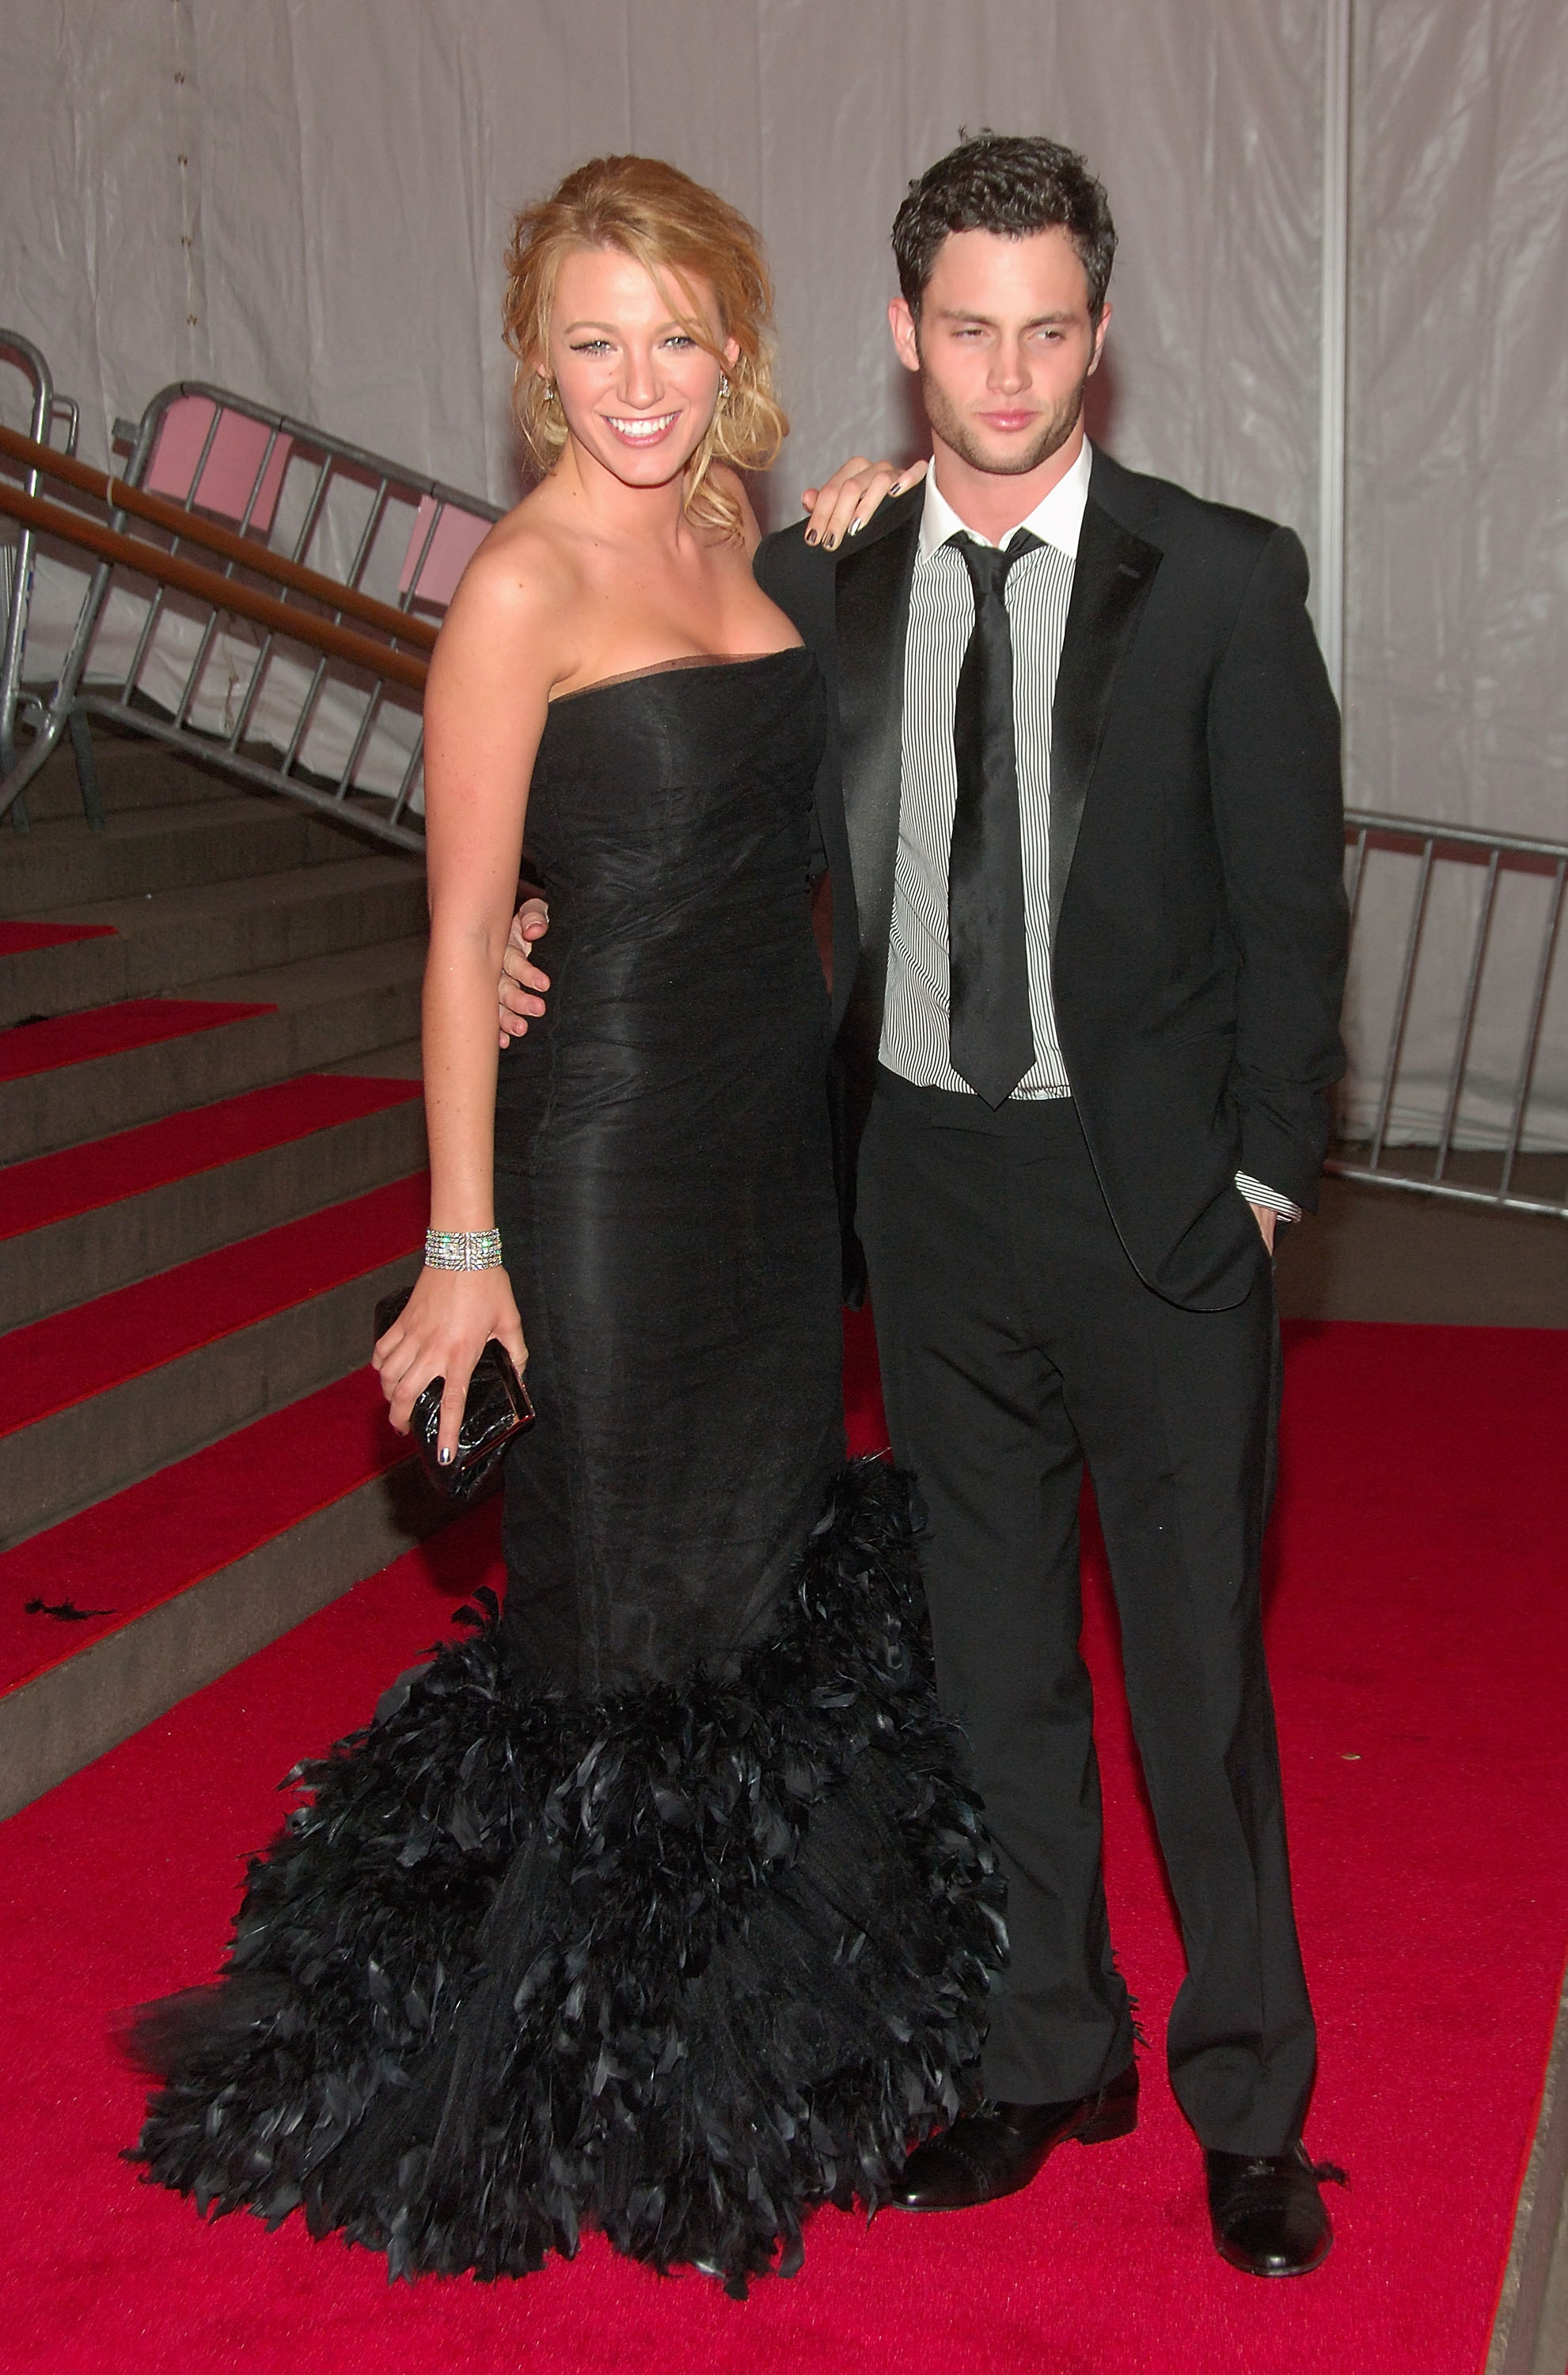 Blake Lively and Penn Badgley stepped out together for NYC's May 2008 Met Gala.